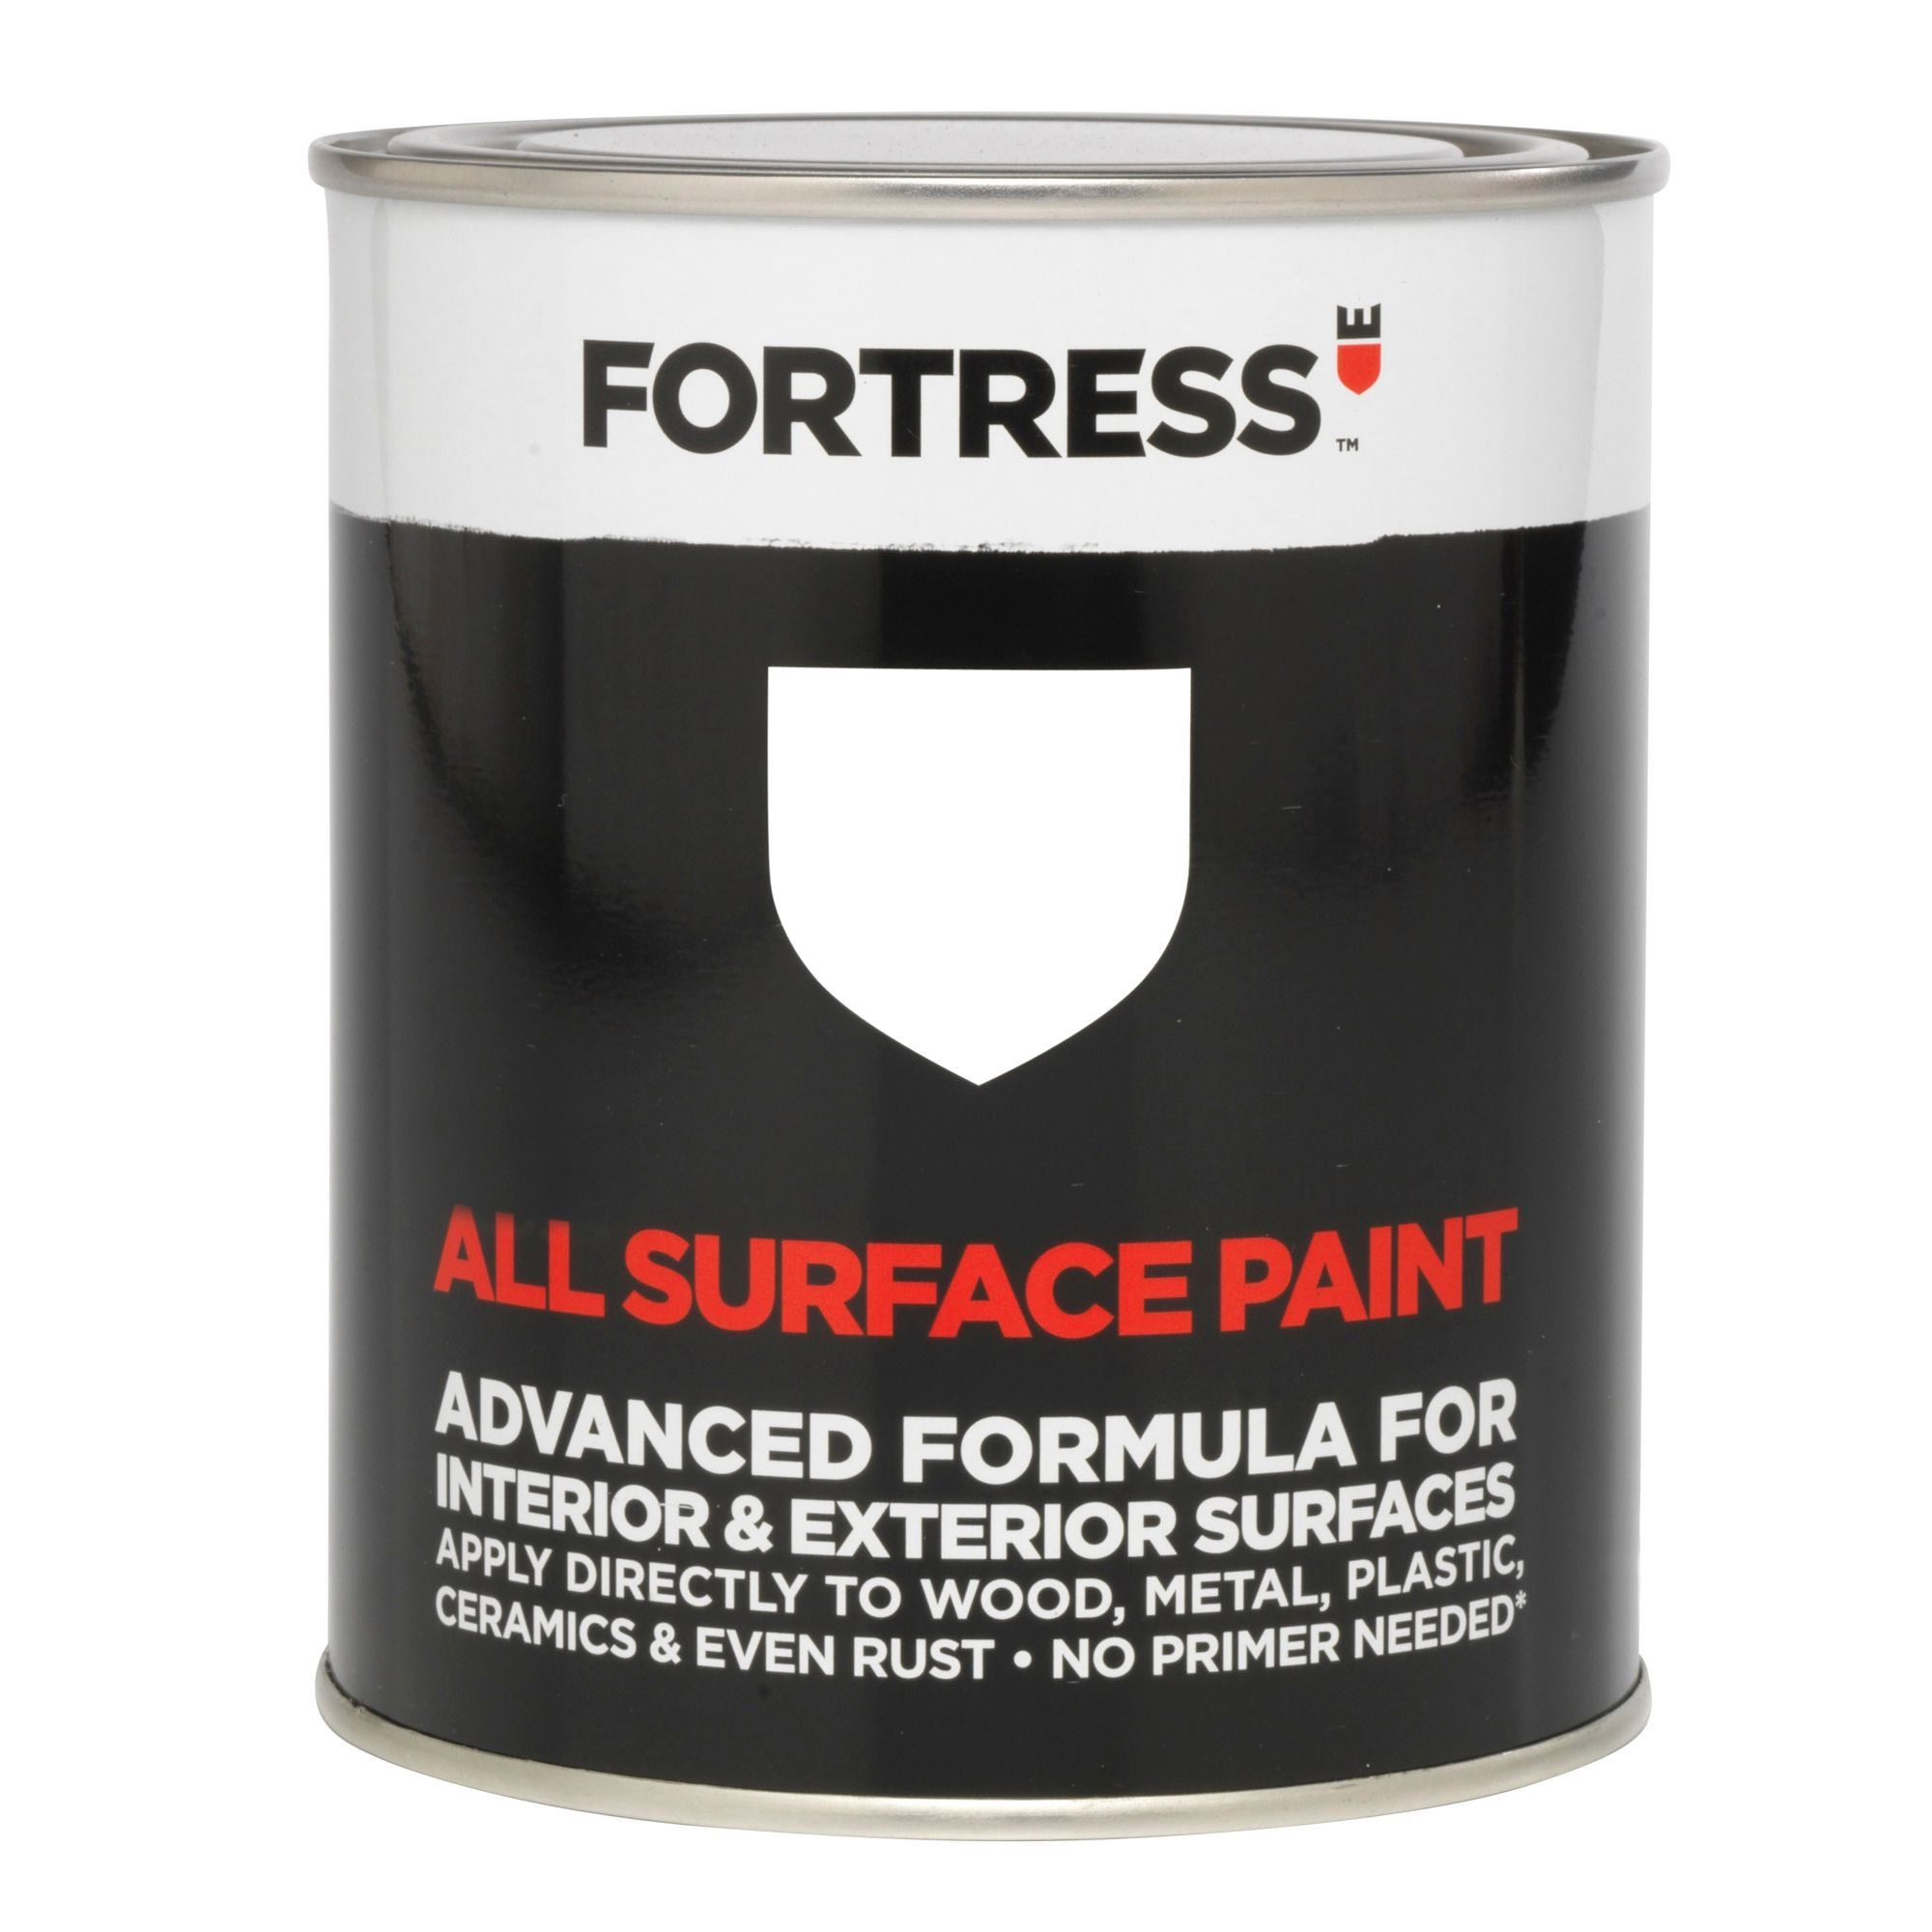 Rust oleum painter 39 s touch interior exterior duck egg blue gloss multi purpose paint 20ml - Exterior white gloss paint image ...